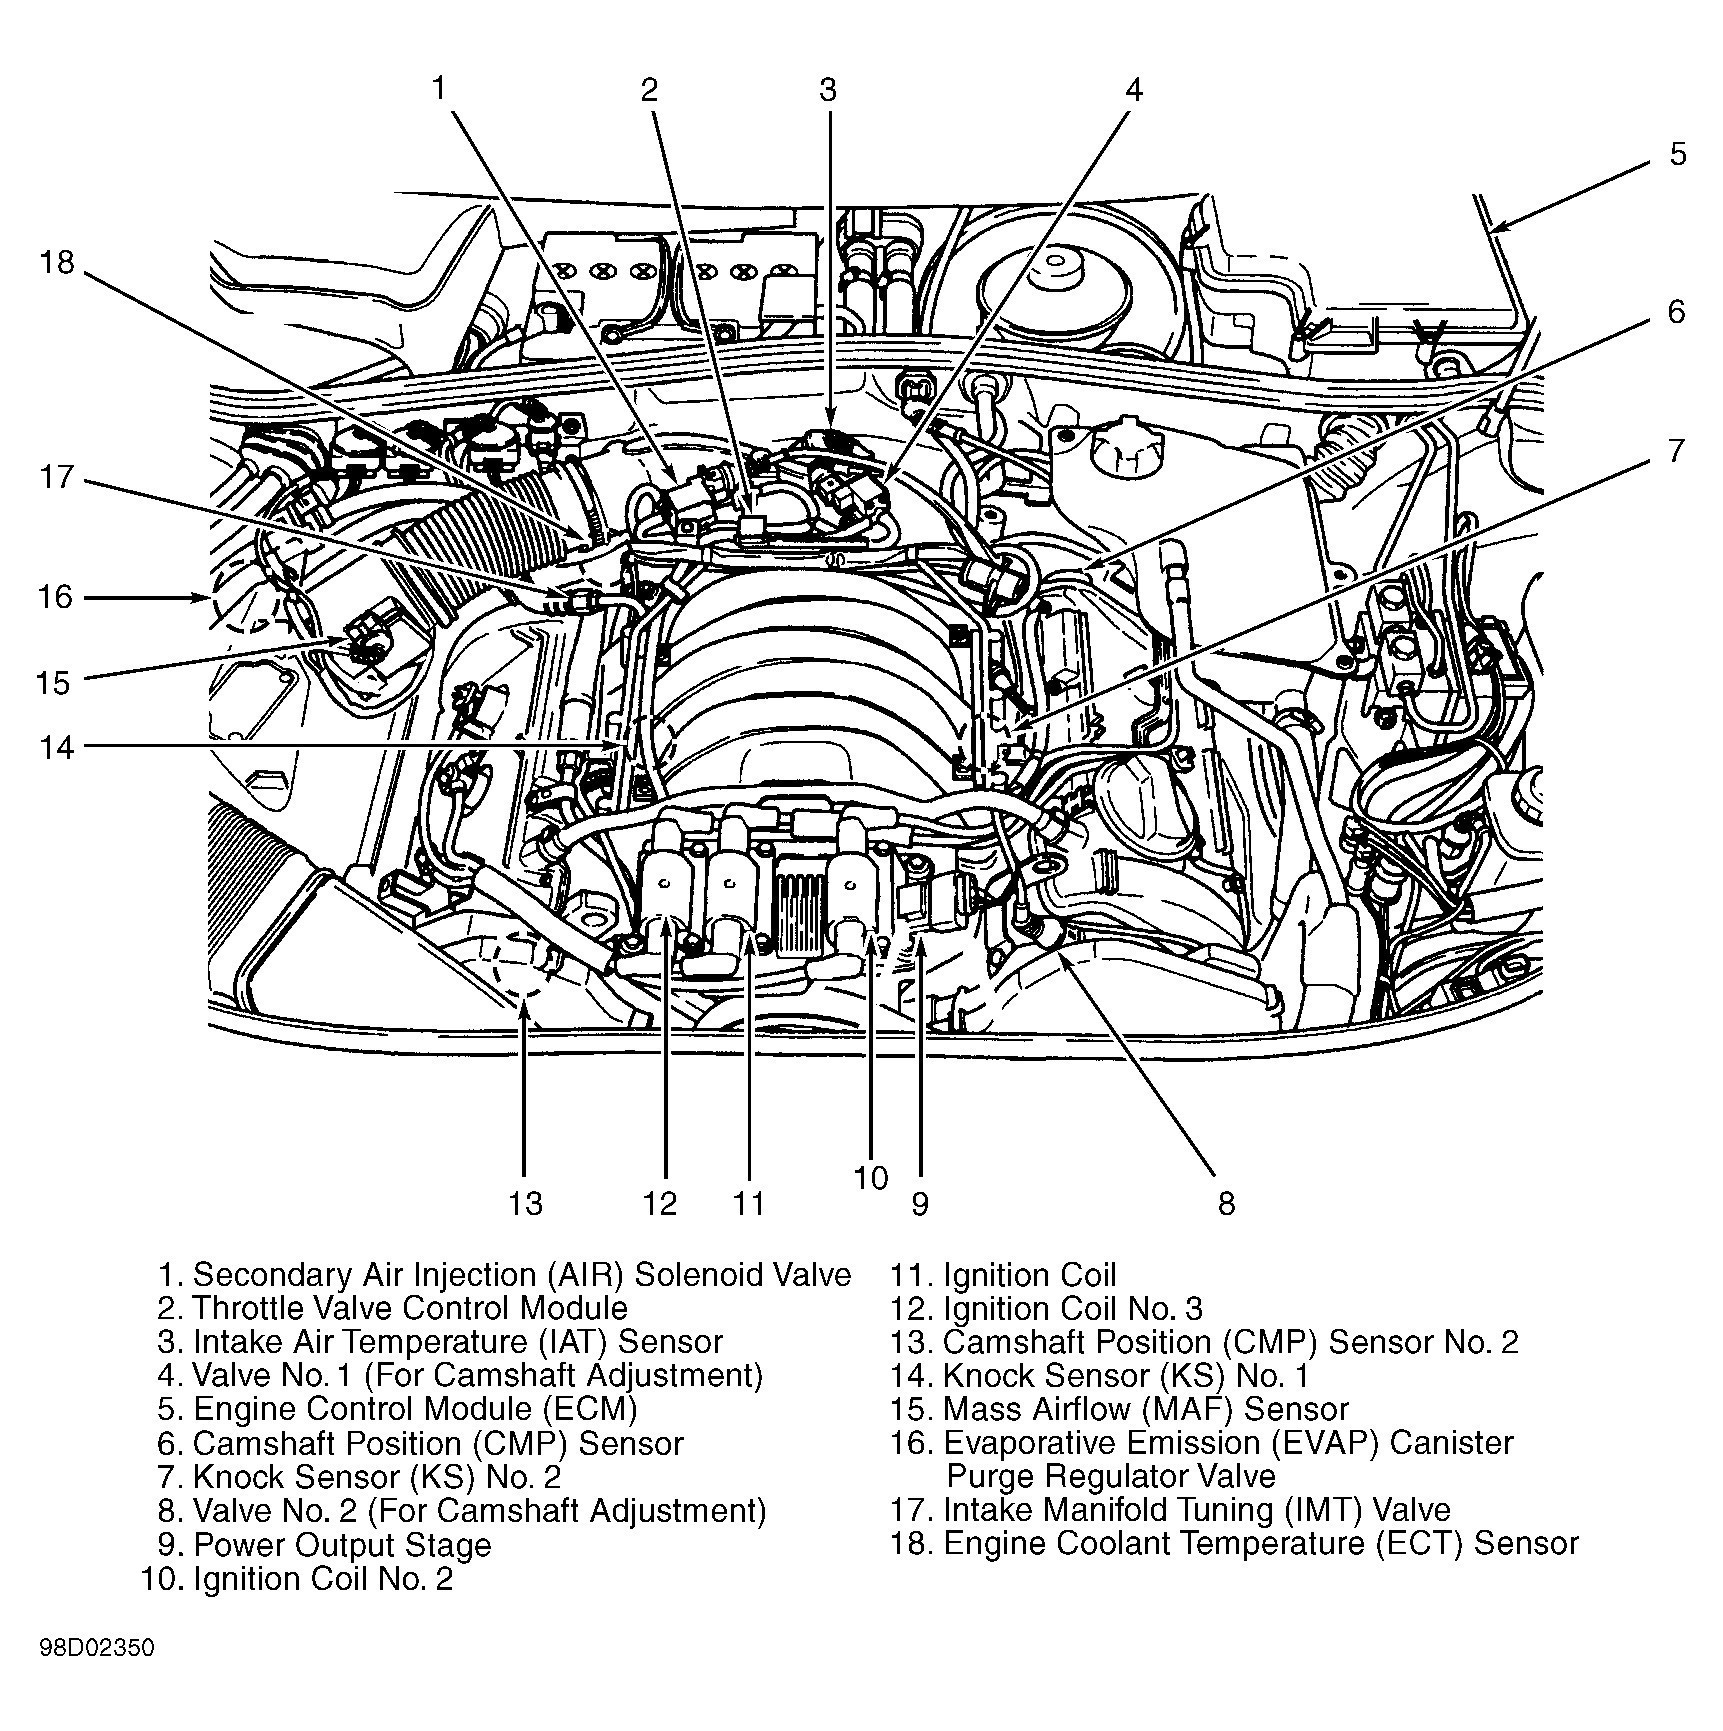 2001 Dodge Ram Engine Diagram 1999 Dodge Durango 5 9 Engine Diagram Wiring Diagram Datasource Of 2001 Dodge Ram Engine Diagram Ram 2500 Engine Diagram Wiring Diagram toolbox